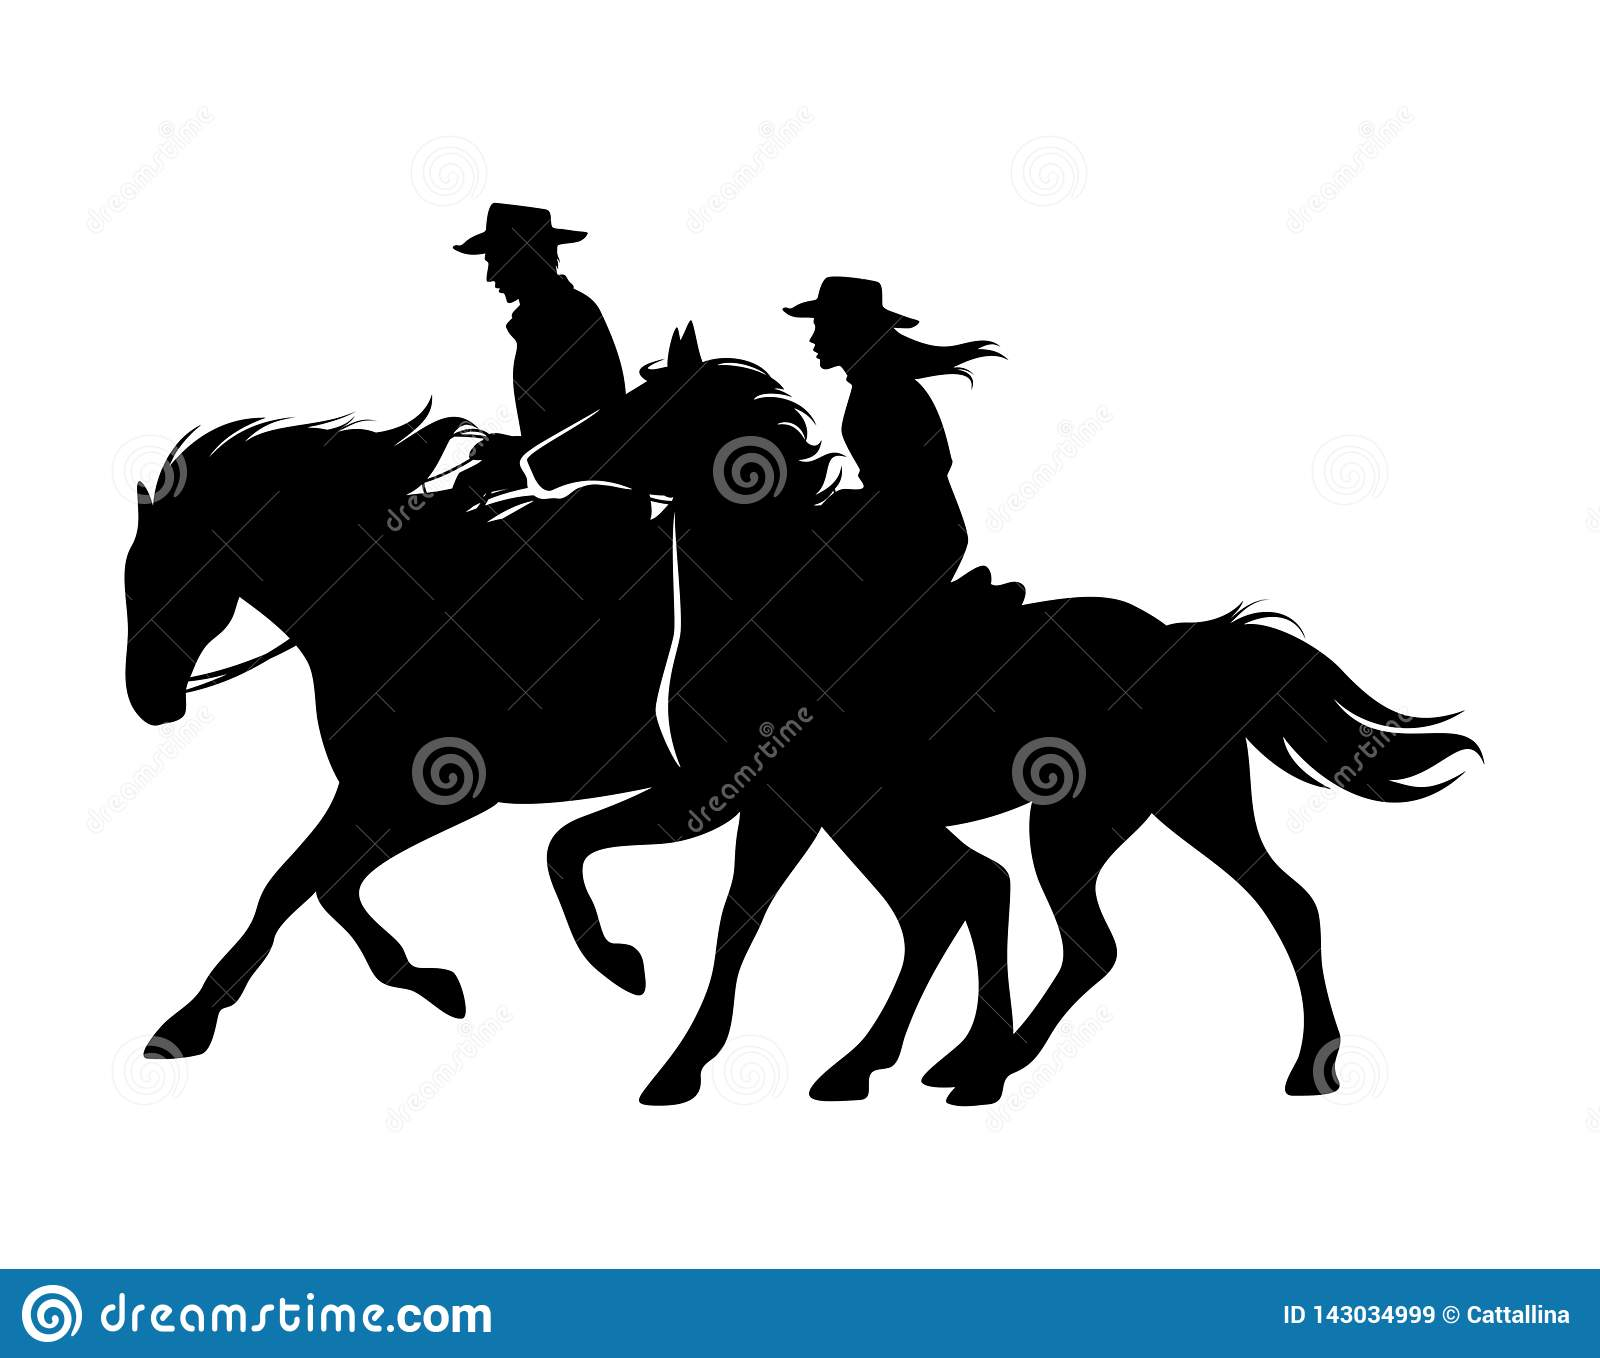 Cowboy And Cowgirl Riding Horses Black Vector Silhouette Stock Vector Illustration Of Horse Cowboy 143034999